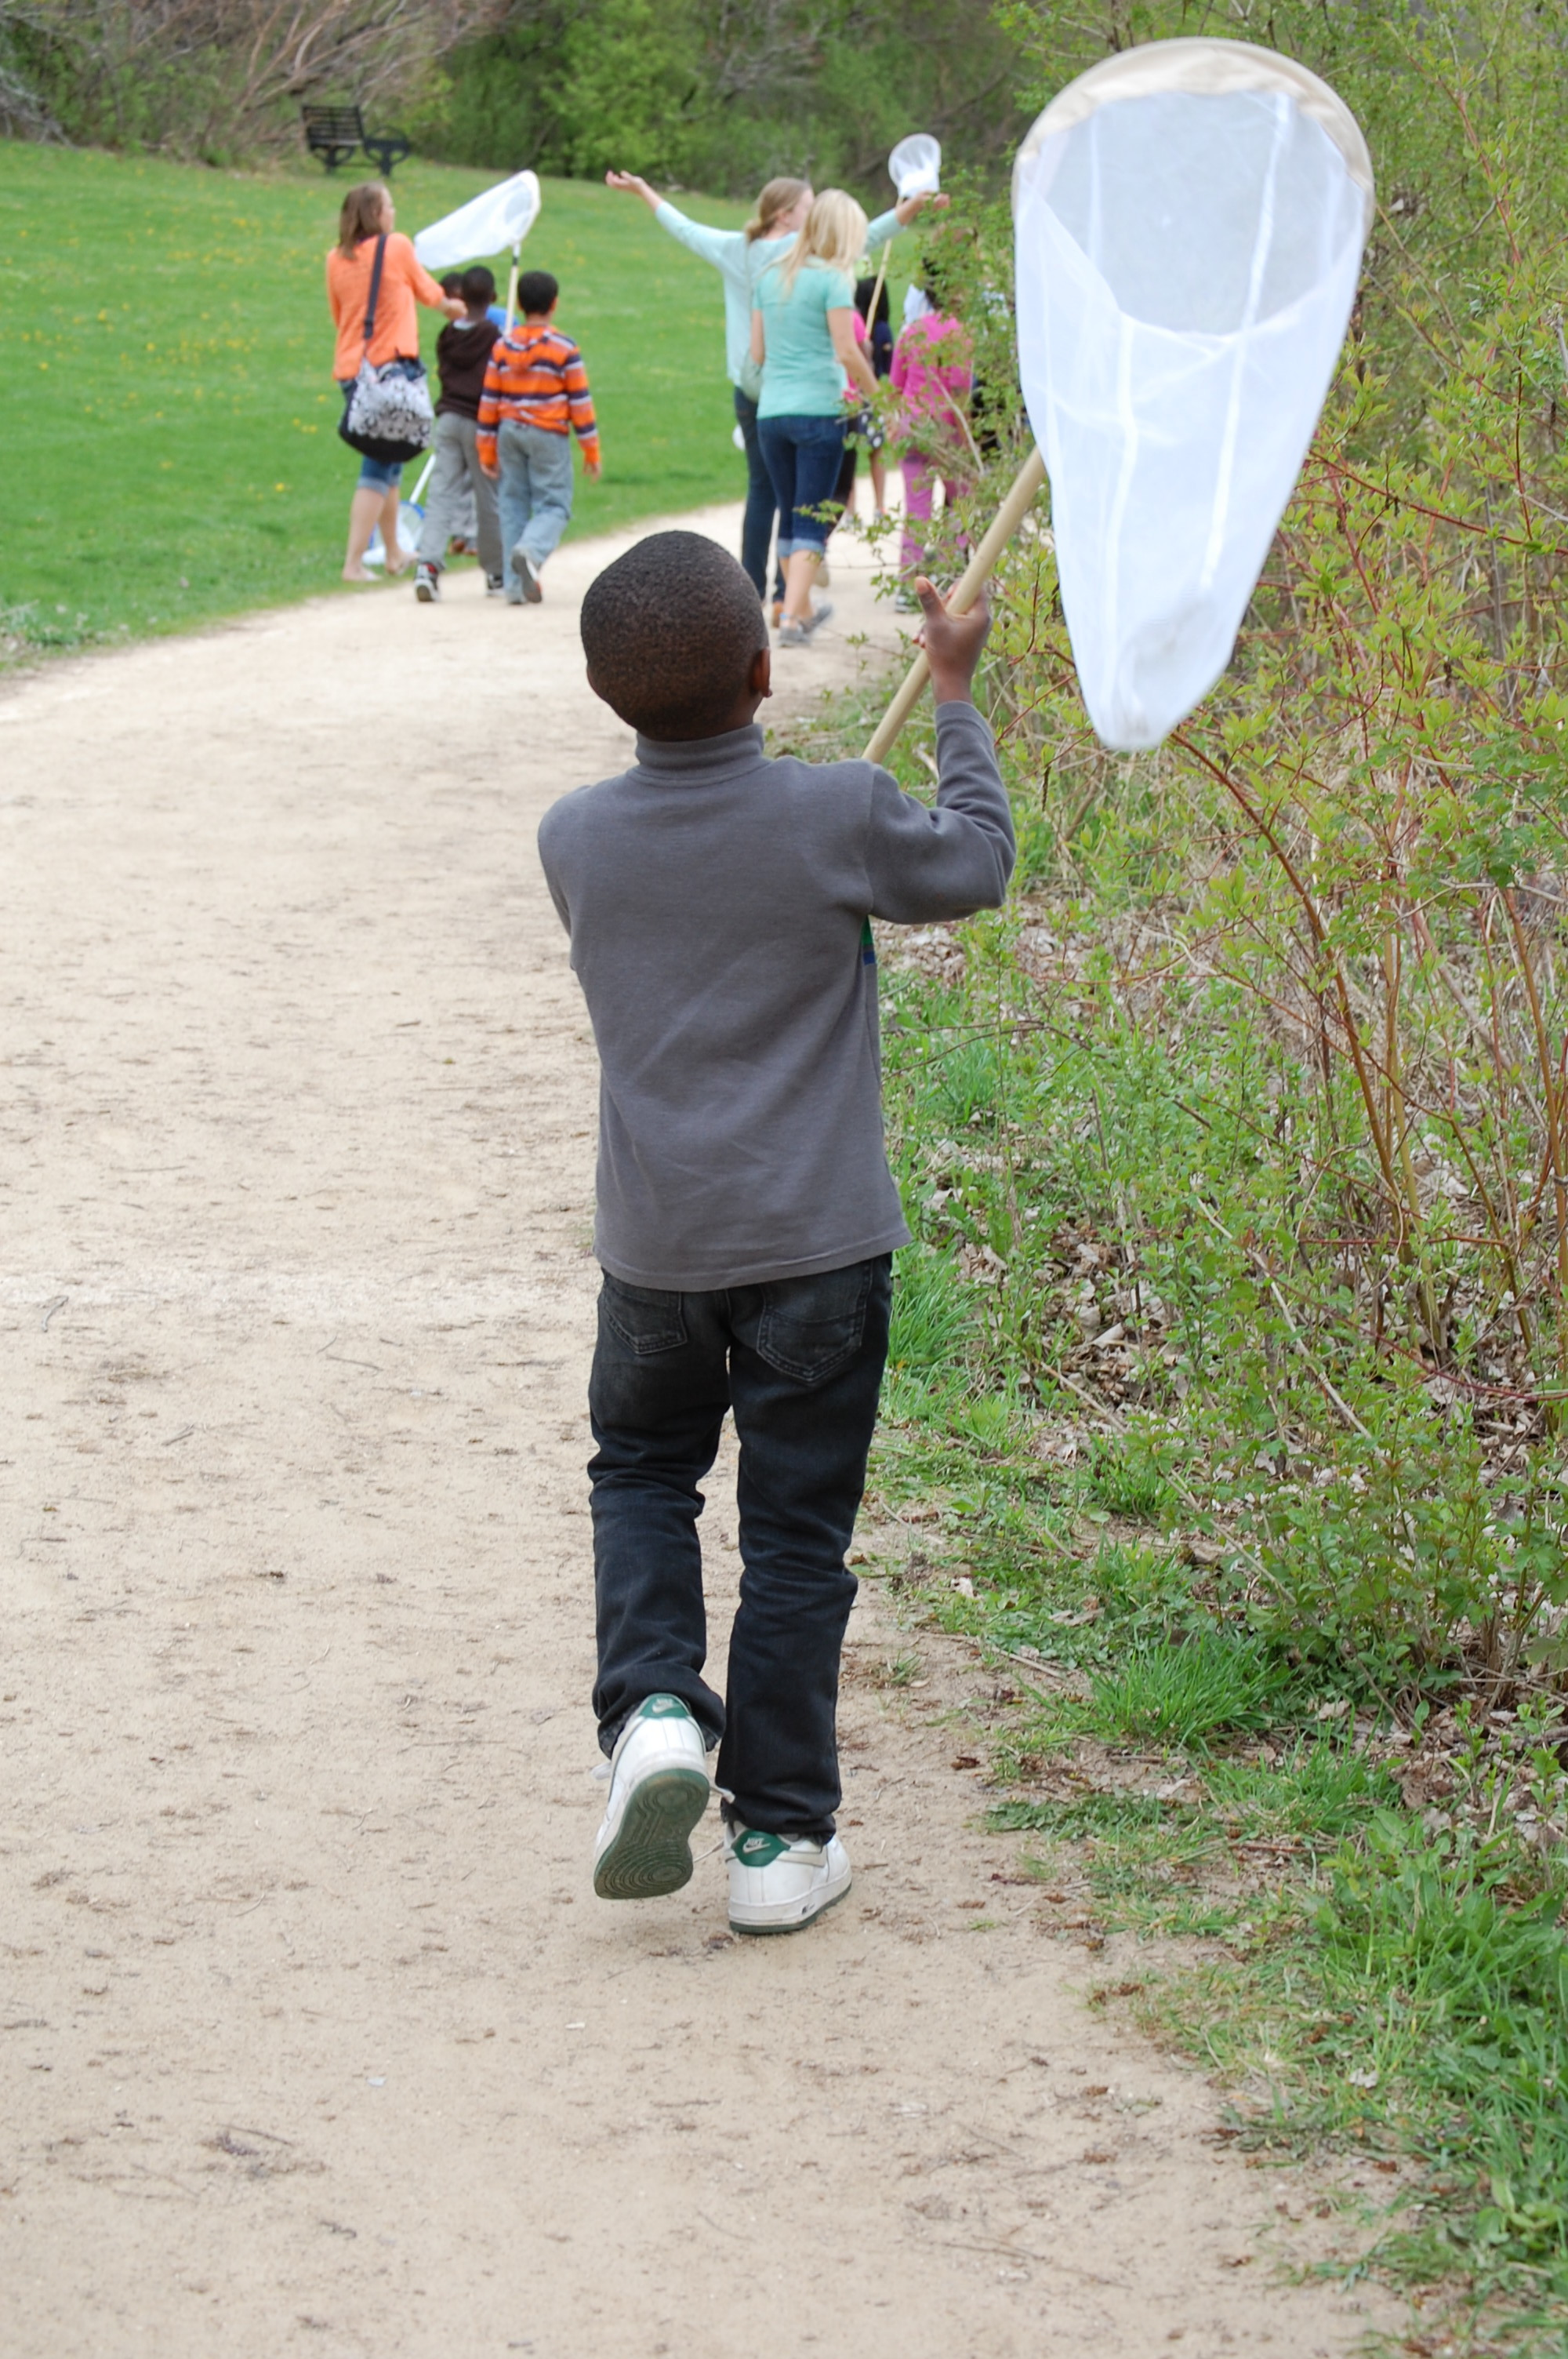 Students at Vera Court Neighborhood Center explore the nature just outside their doors during Madison Audubon's nature education programming.